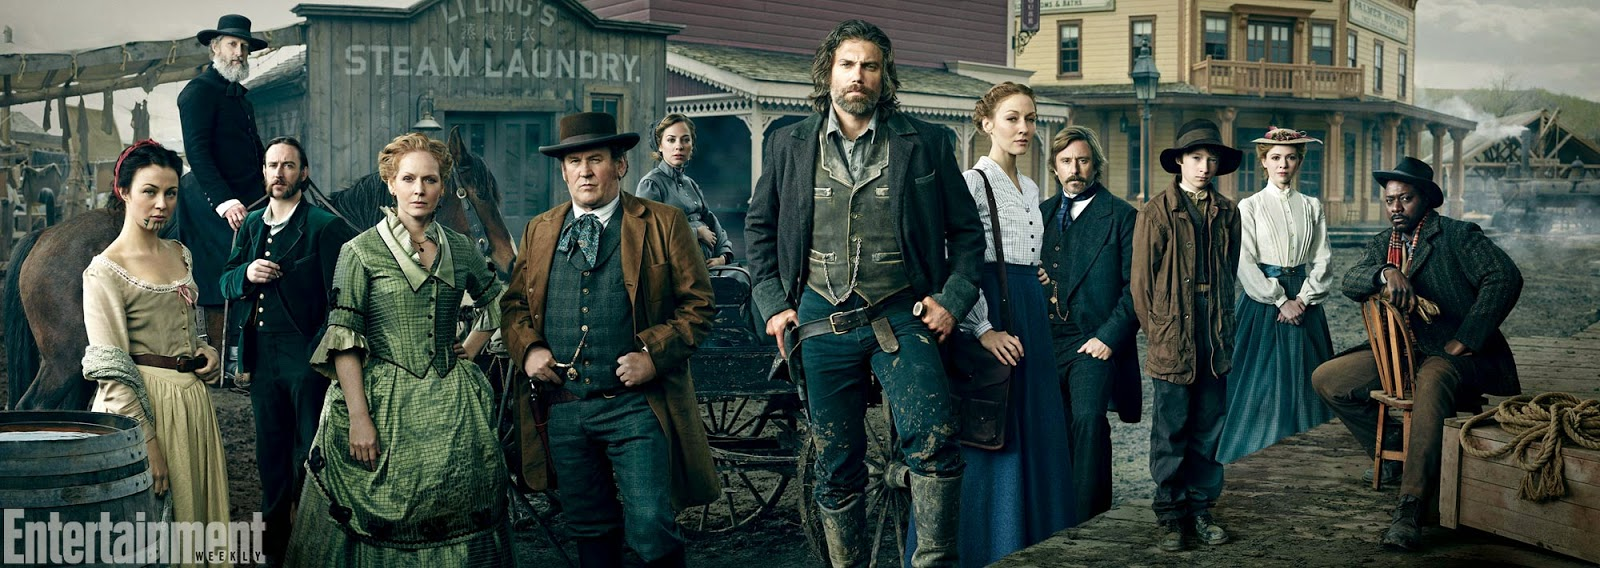 Hell on wheels season 4 first official cast photo for Hell s kitchen season 16 cast